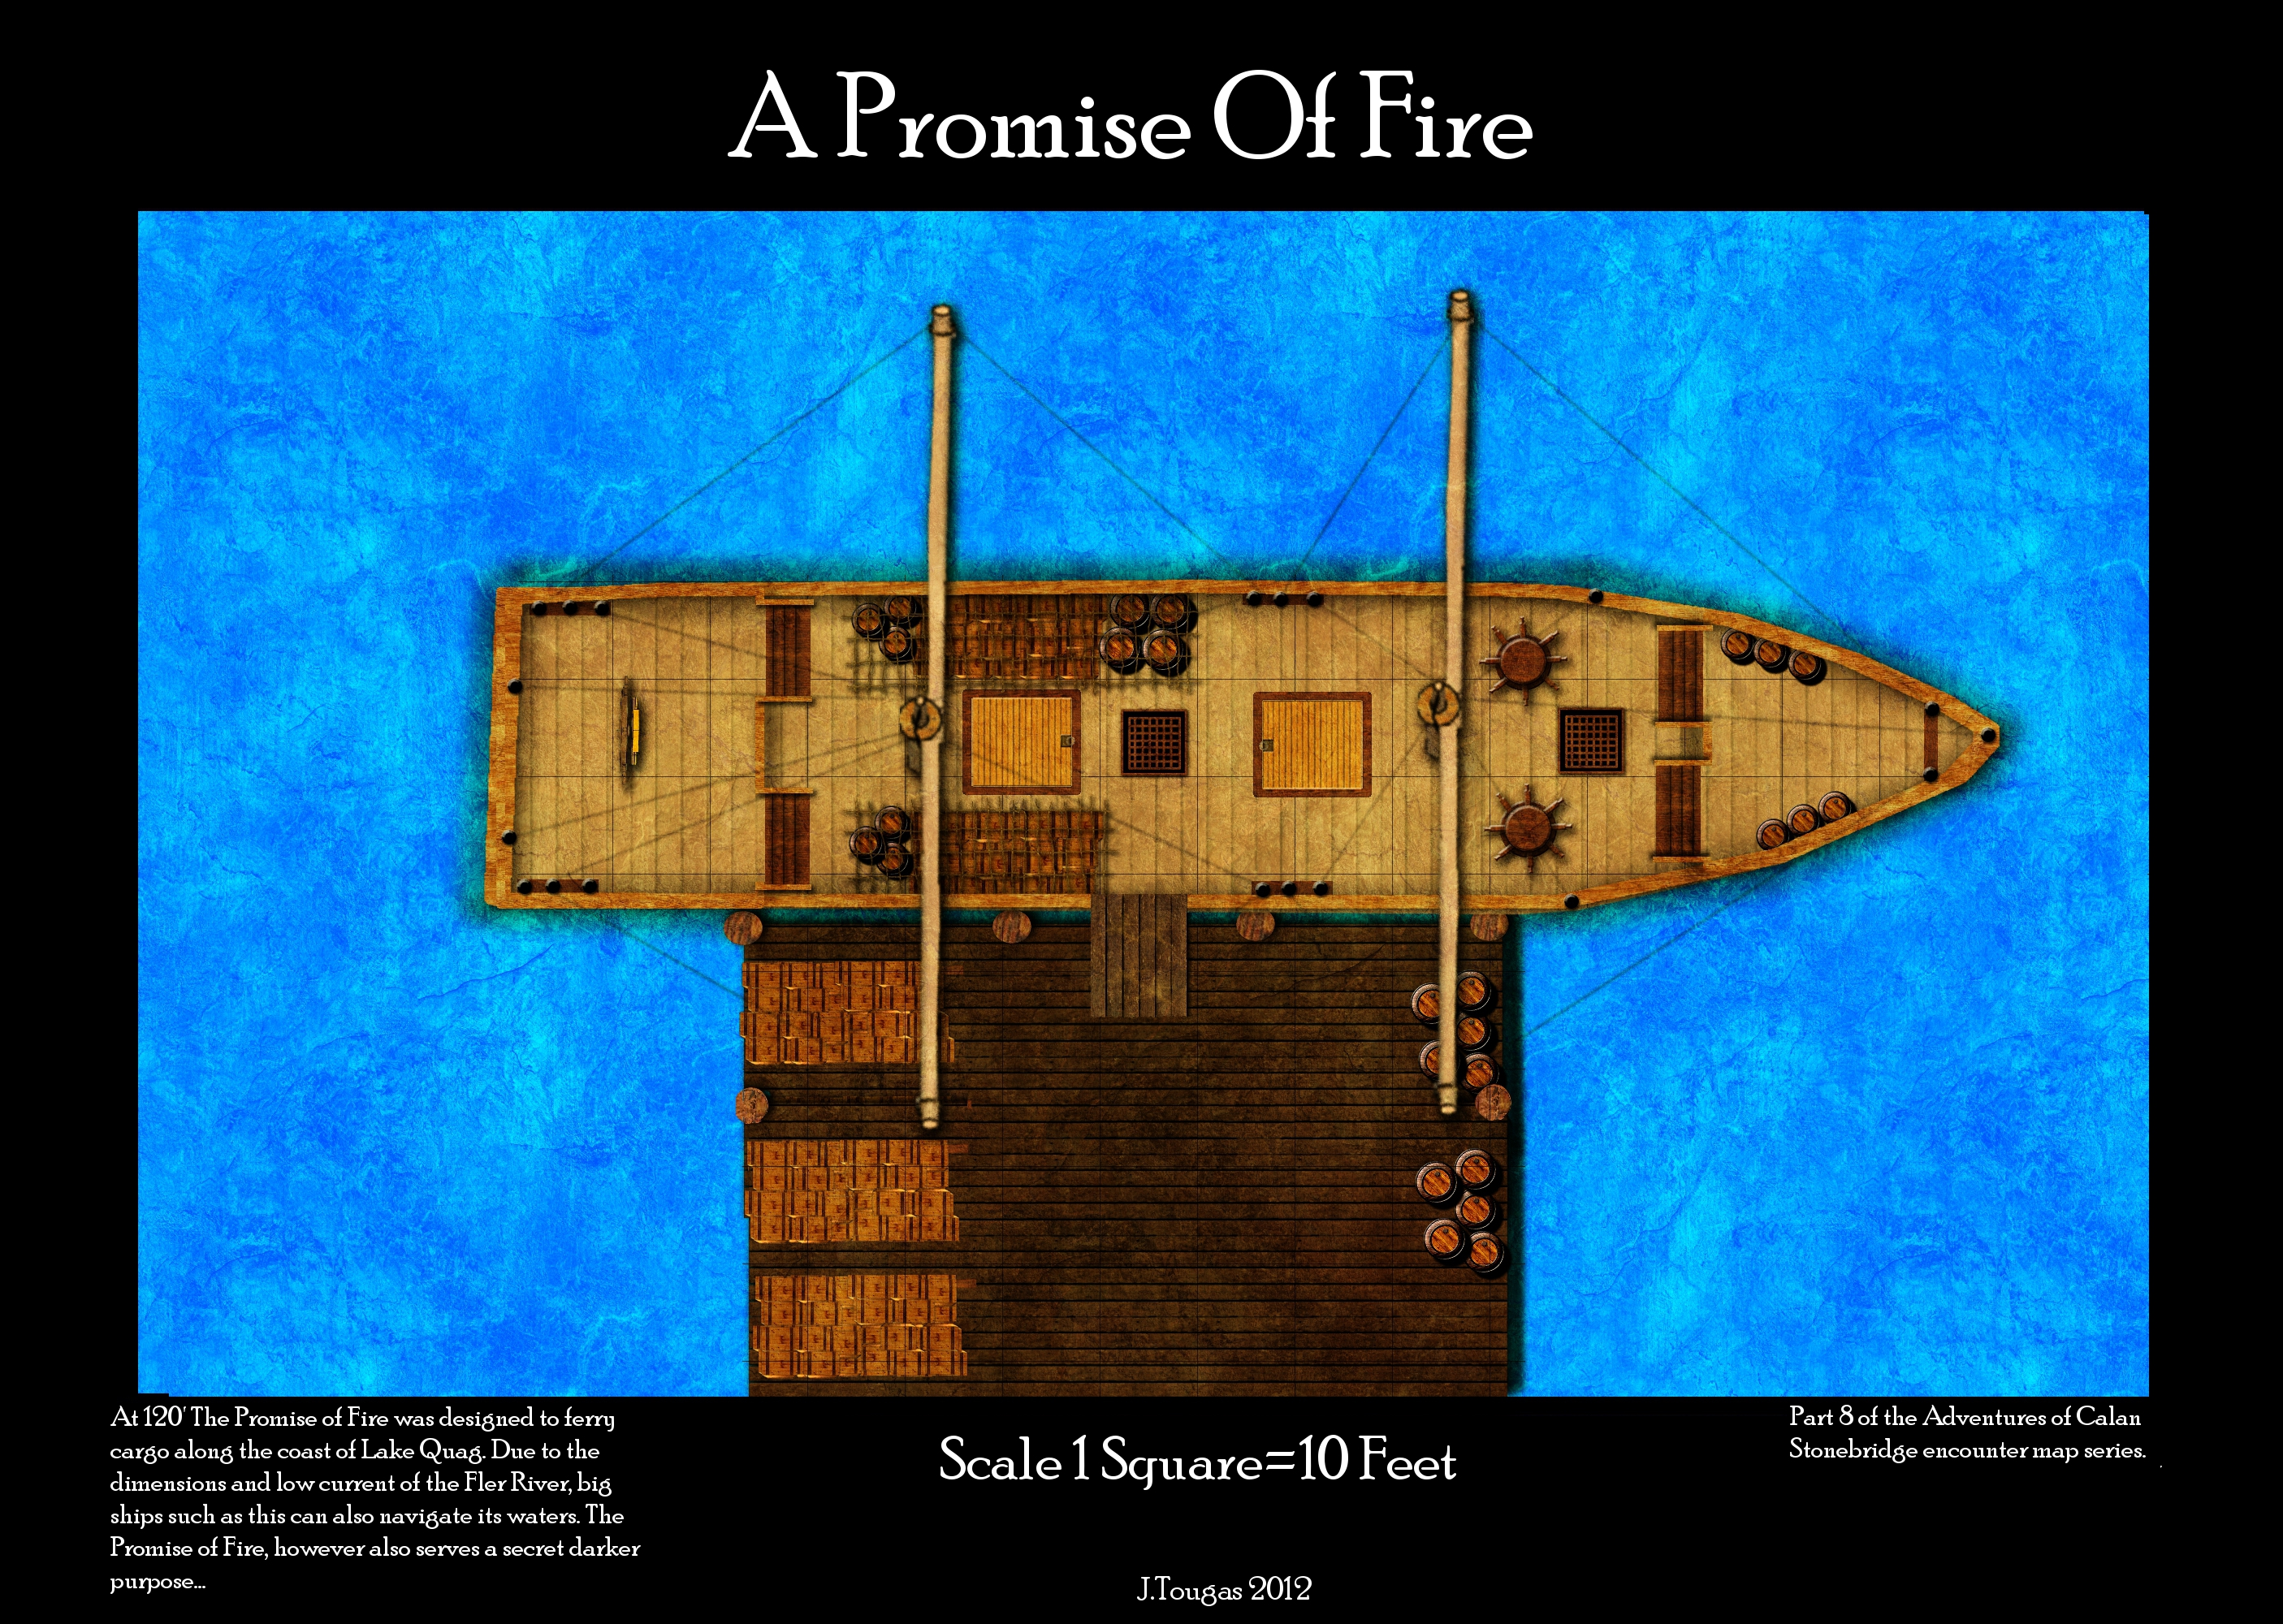 The Promise of Fire smuggling ship